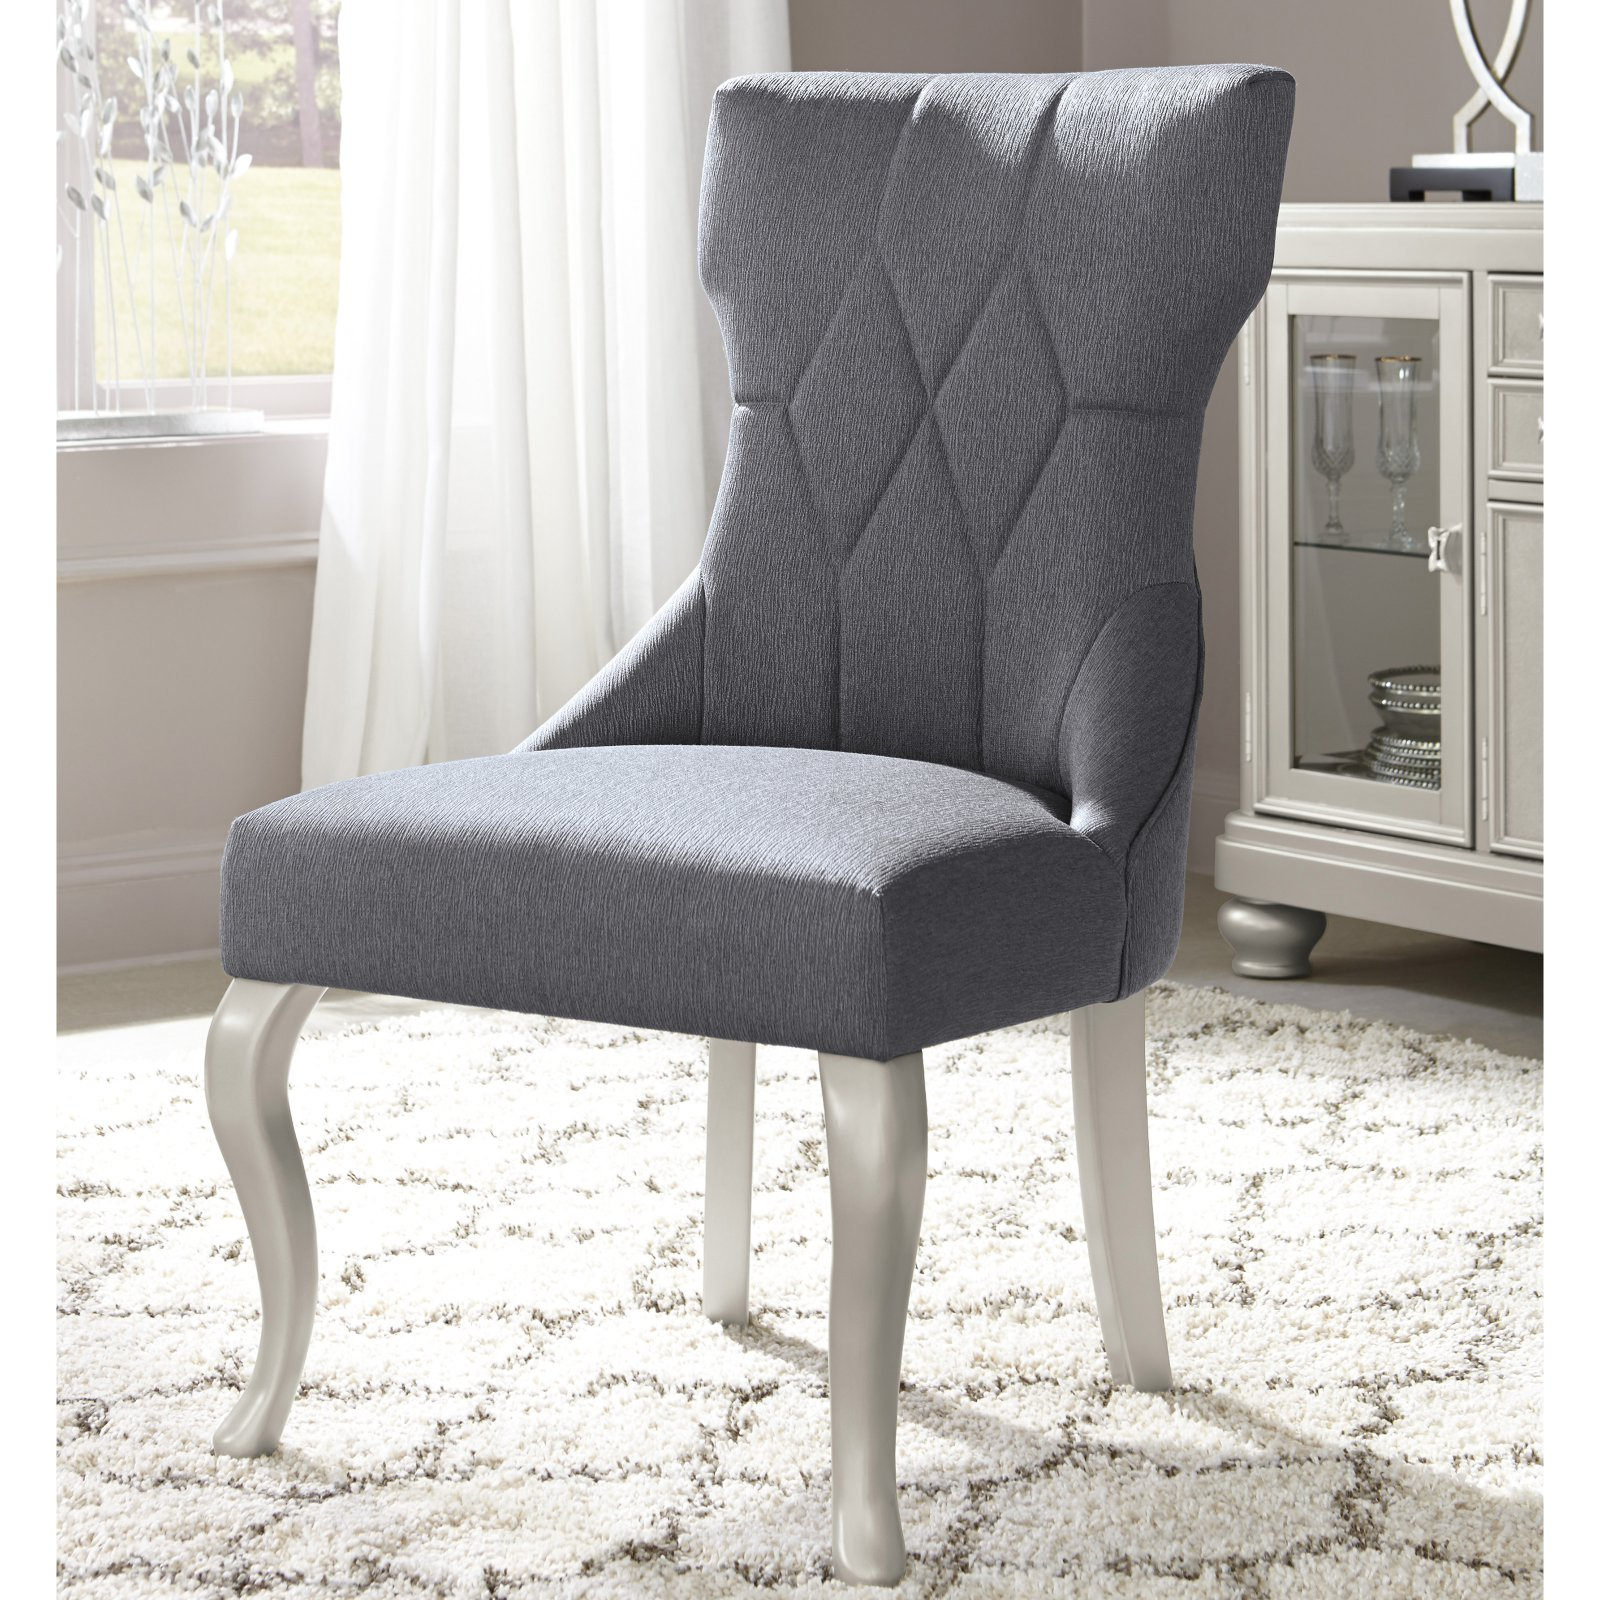 Signature Design by Ashley Coralayne Dining Chair - Set of 2